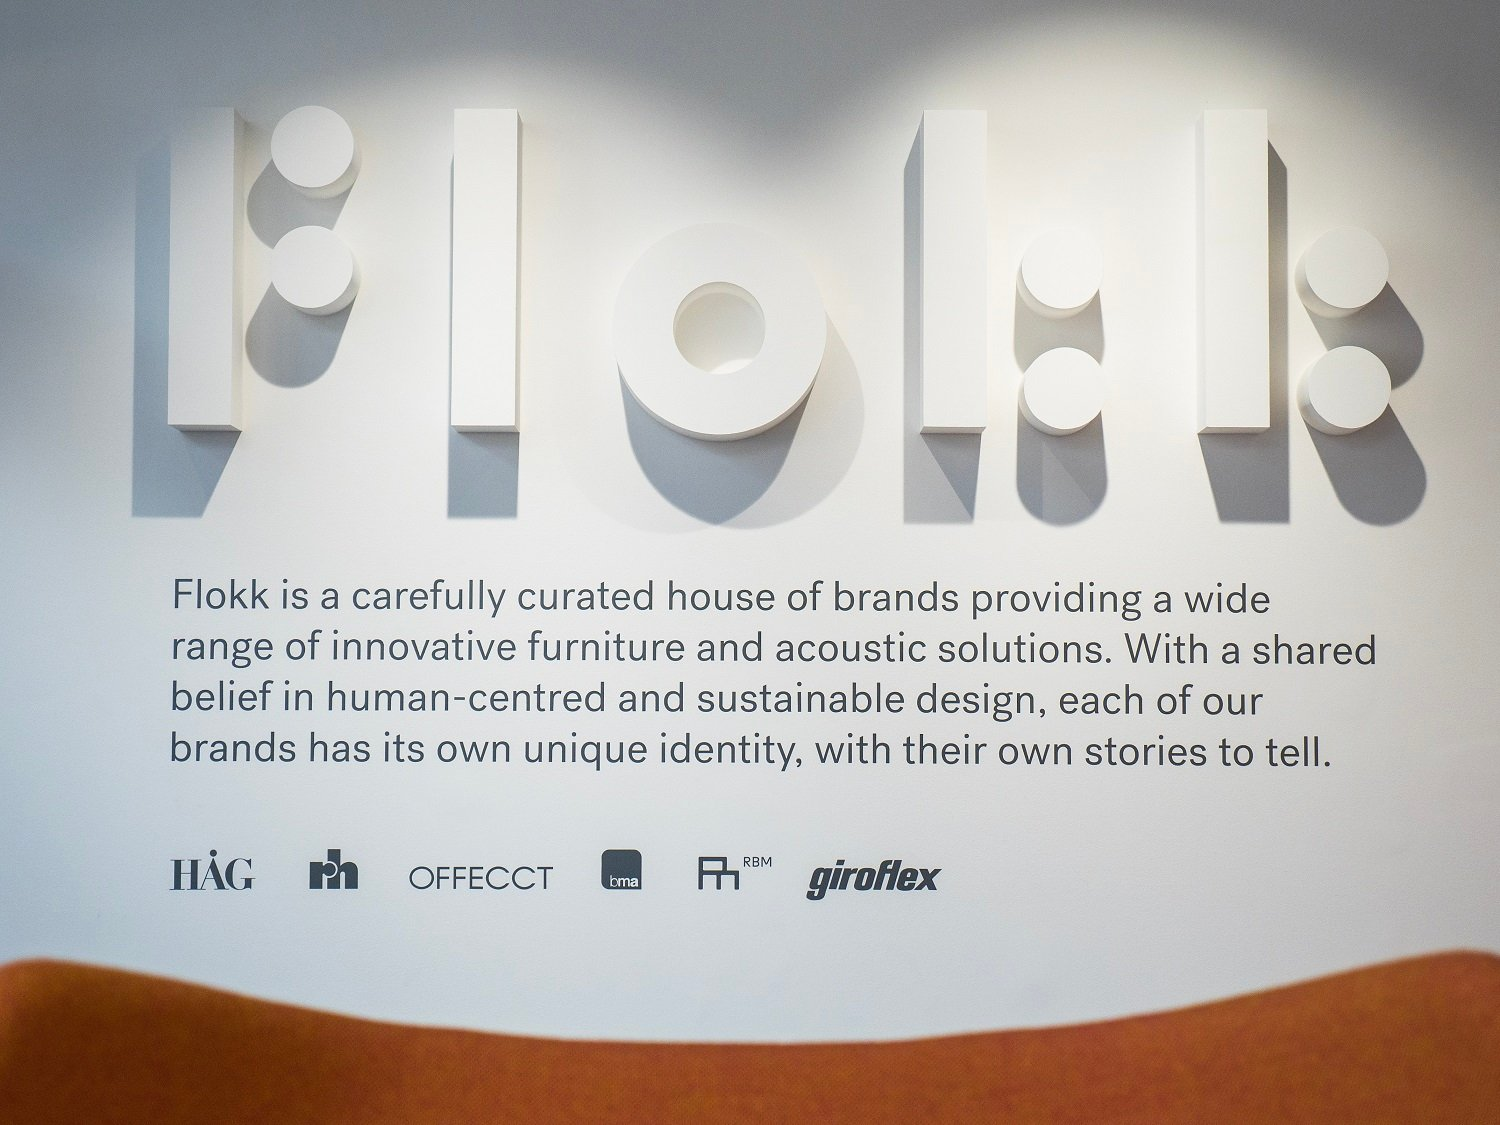 UK Flokk showroom with Flokk mission statement on wall